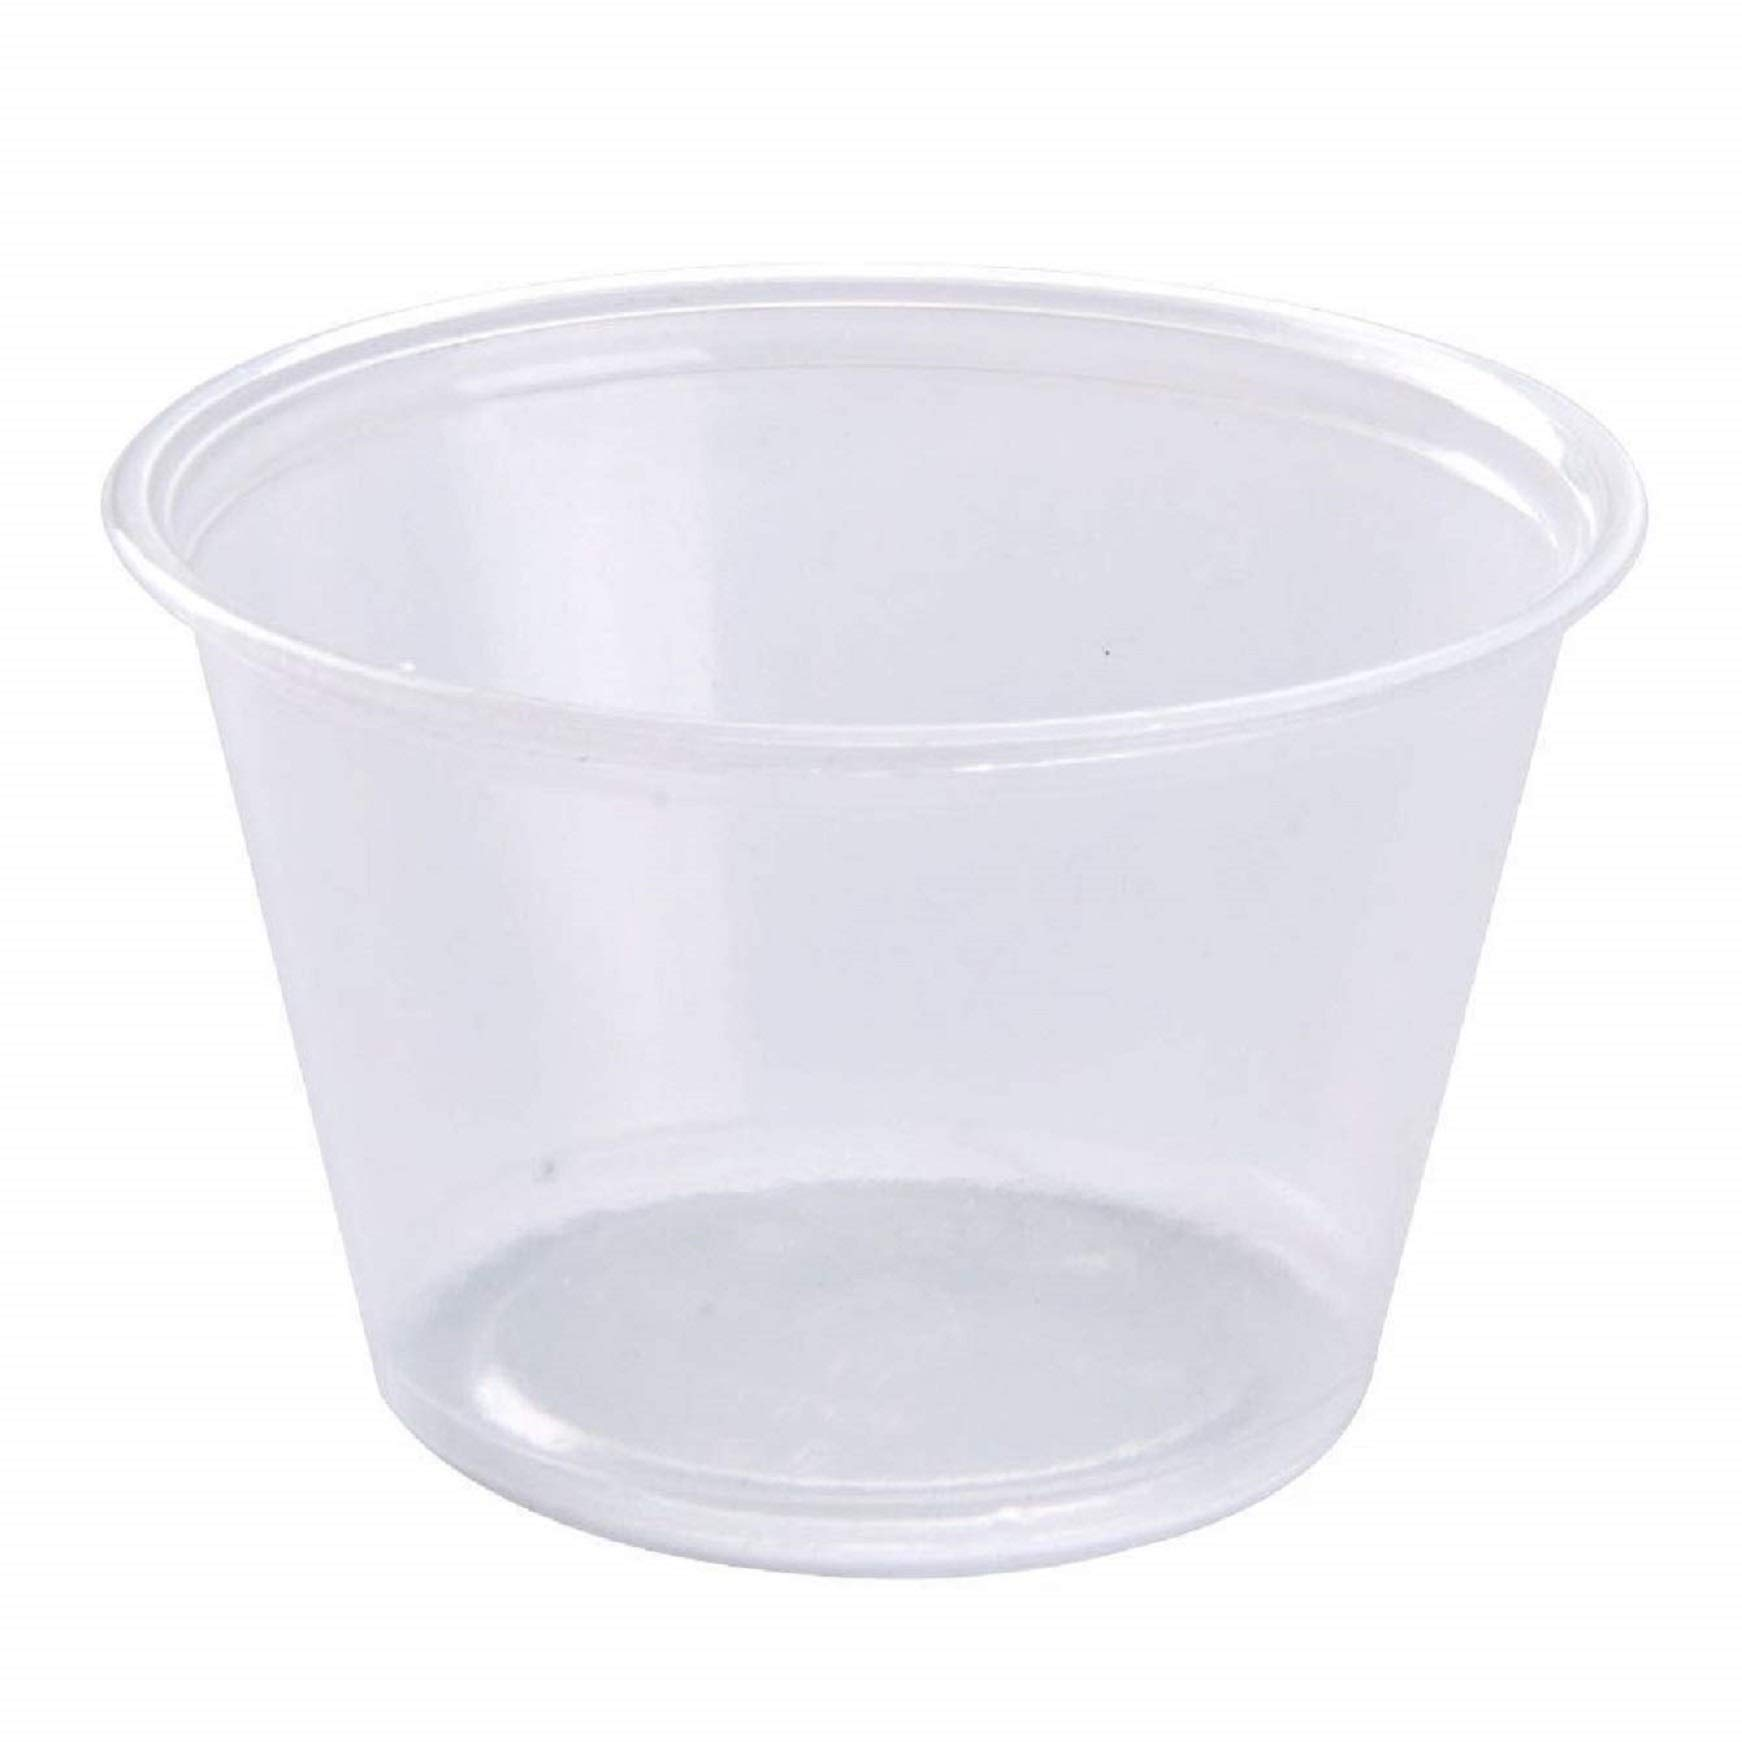 Disposable Souffle Portion Plastic Cups 4 Oz Clear Food Storage Condiments Container Perfect for Sauces Dips Salsa or Other Food Samples (Pack of 200) by The Baker Celebrations